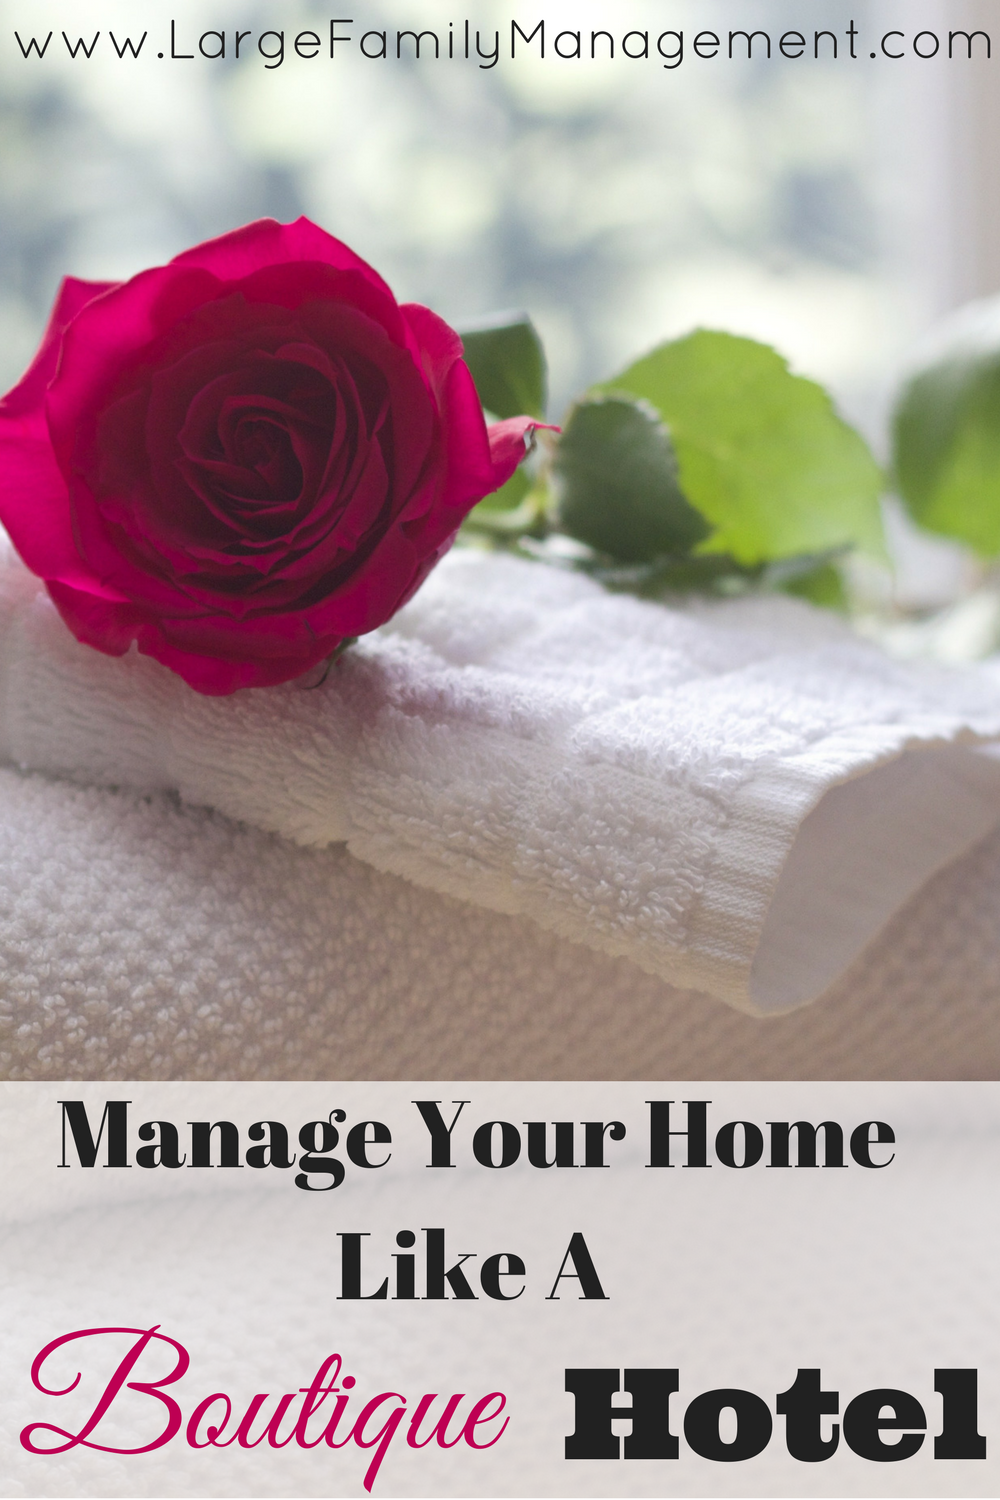 Large Family Home Management Tips from a mother of 9!